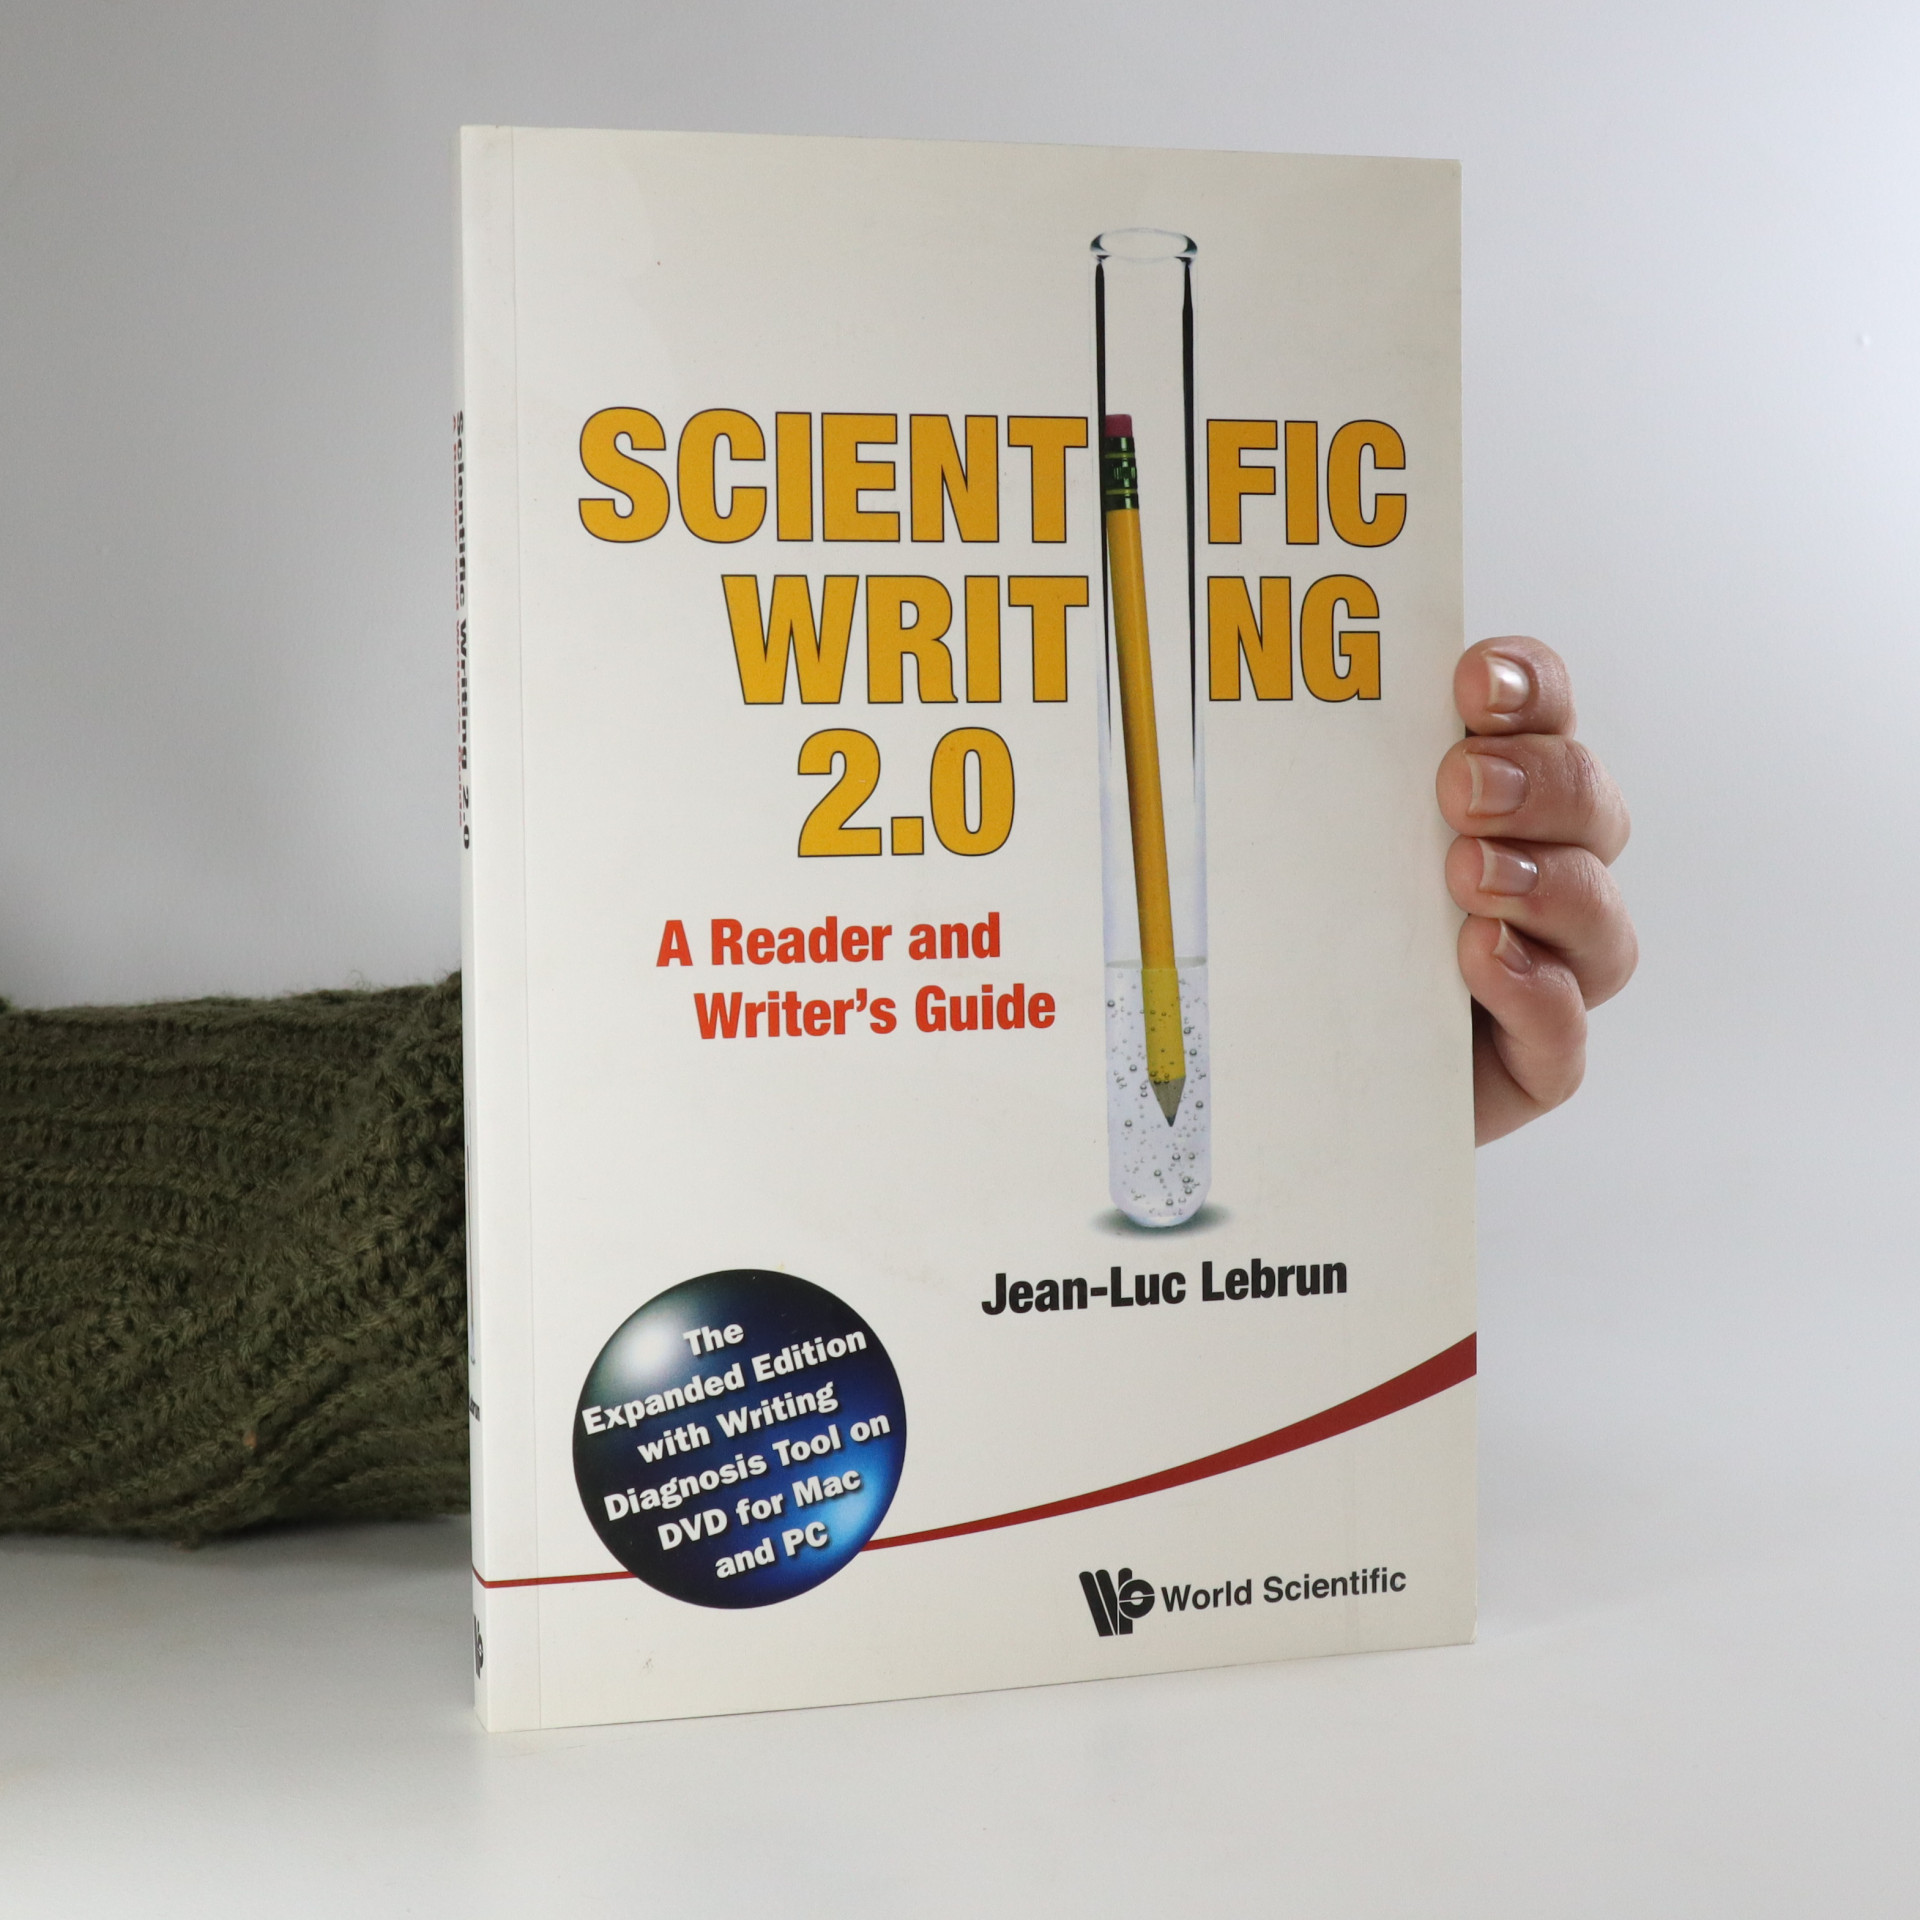 antikvární kniha Scientific writing 2.0. A reader and writer's guide, neuveden